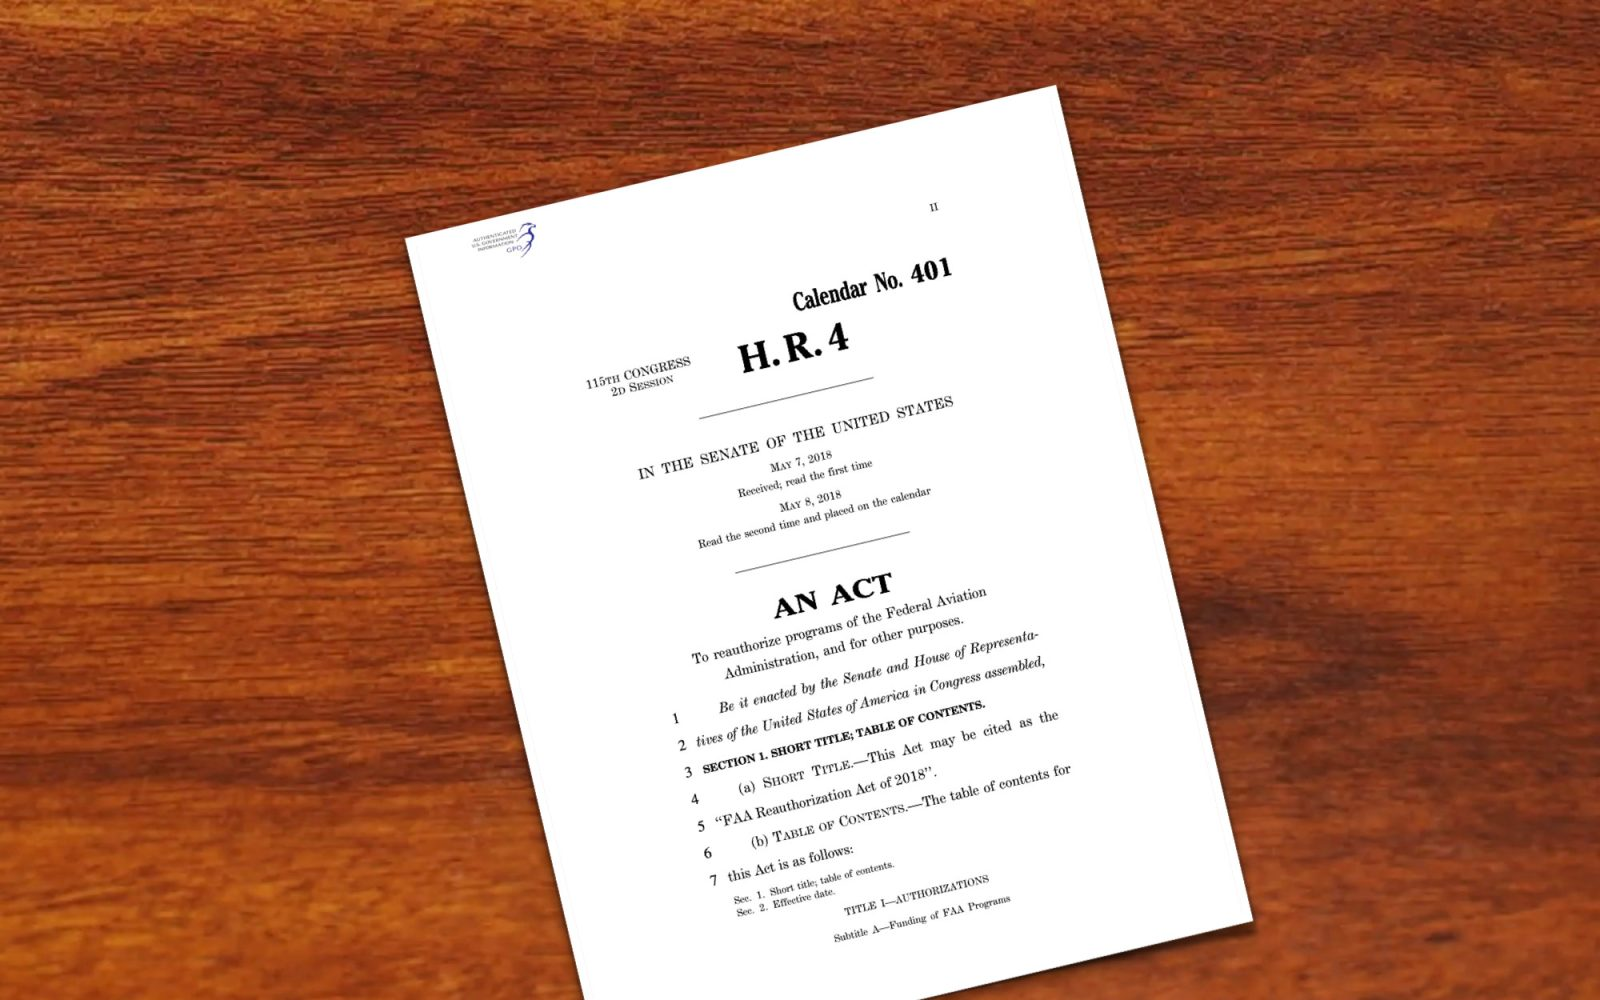 FAA Reauthorization Act of 2018 passed by Senate - DroneDJ